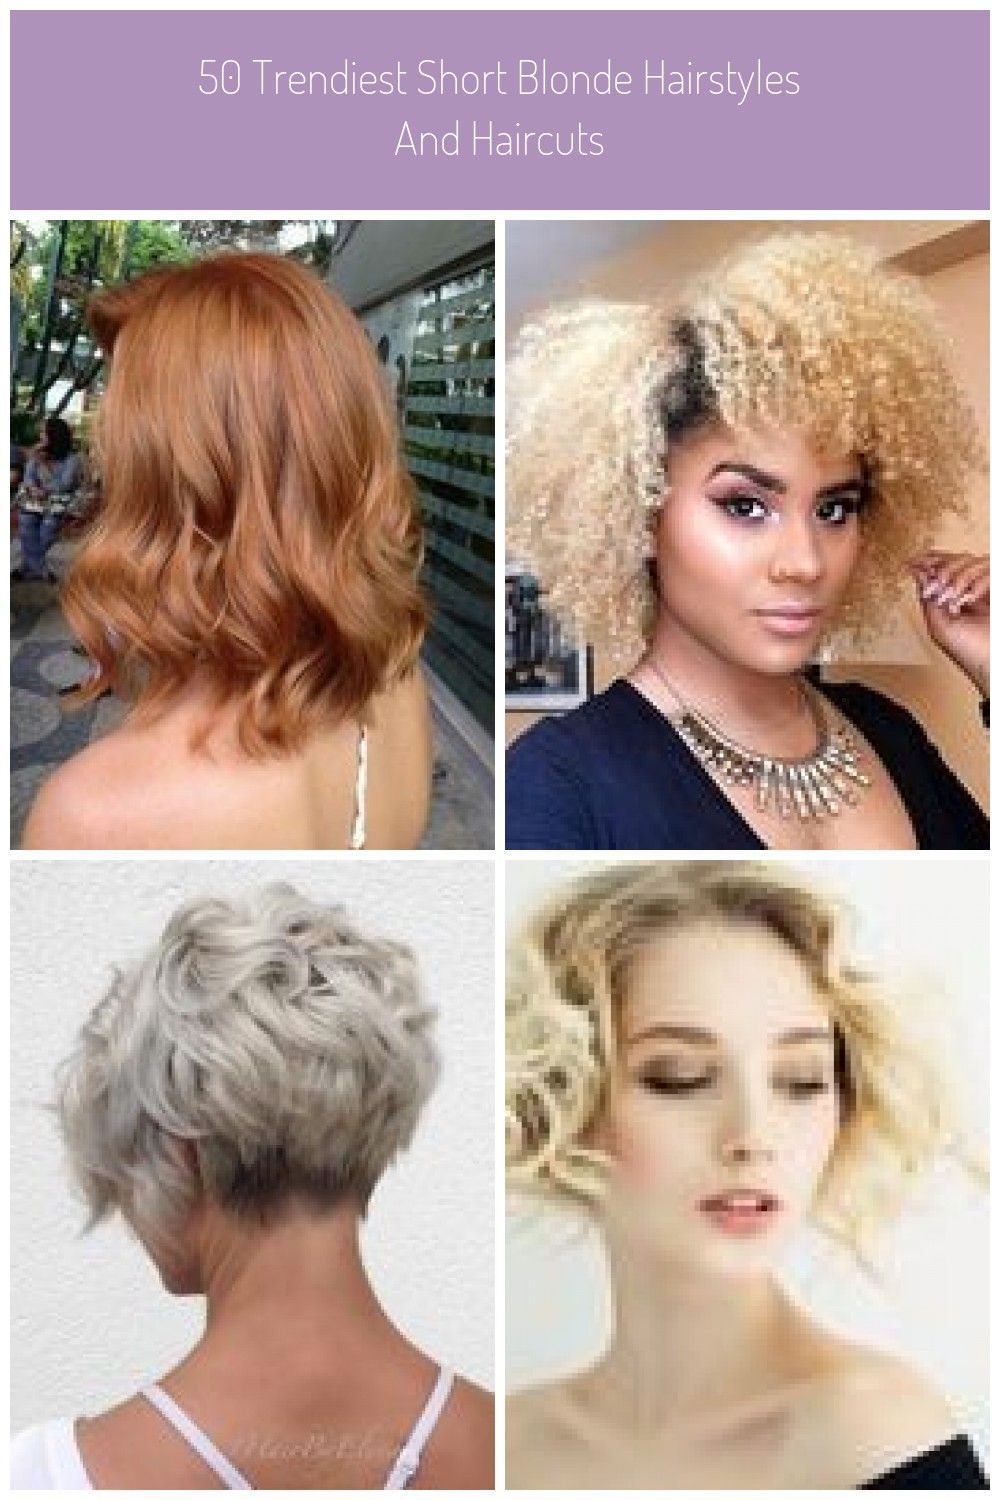 Long Bob Praise Light Orange Strawberry Blond Curls Curly Waves Wavy Strawberry Blonde Hello In 2020 Erdbeerblond Lockige Haare Stylen Shaggy Frisuren